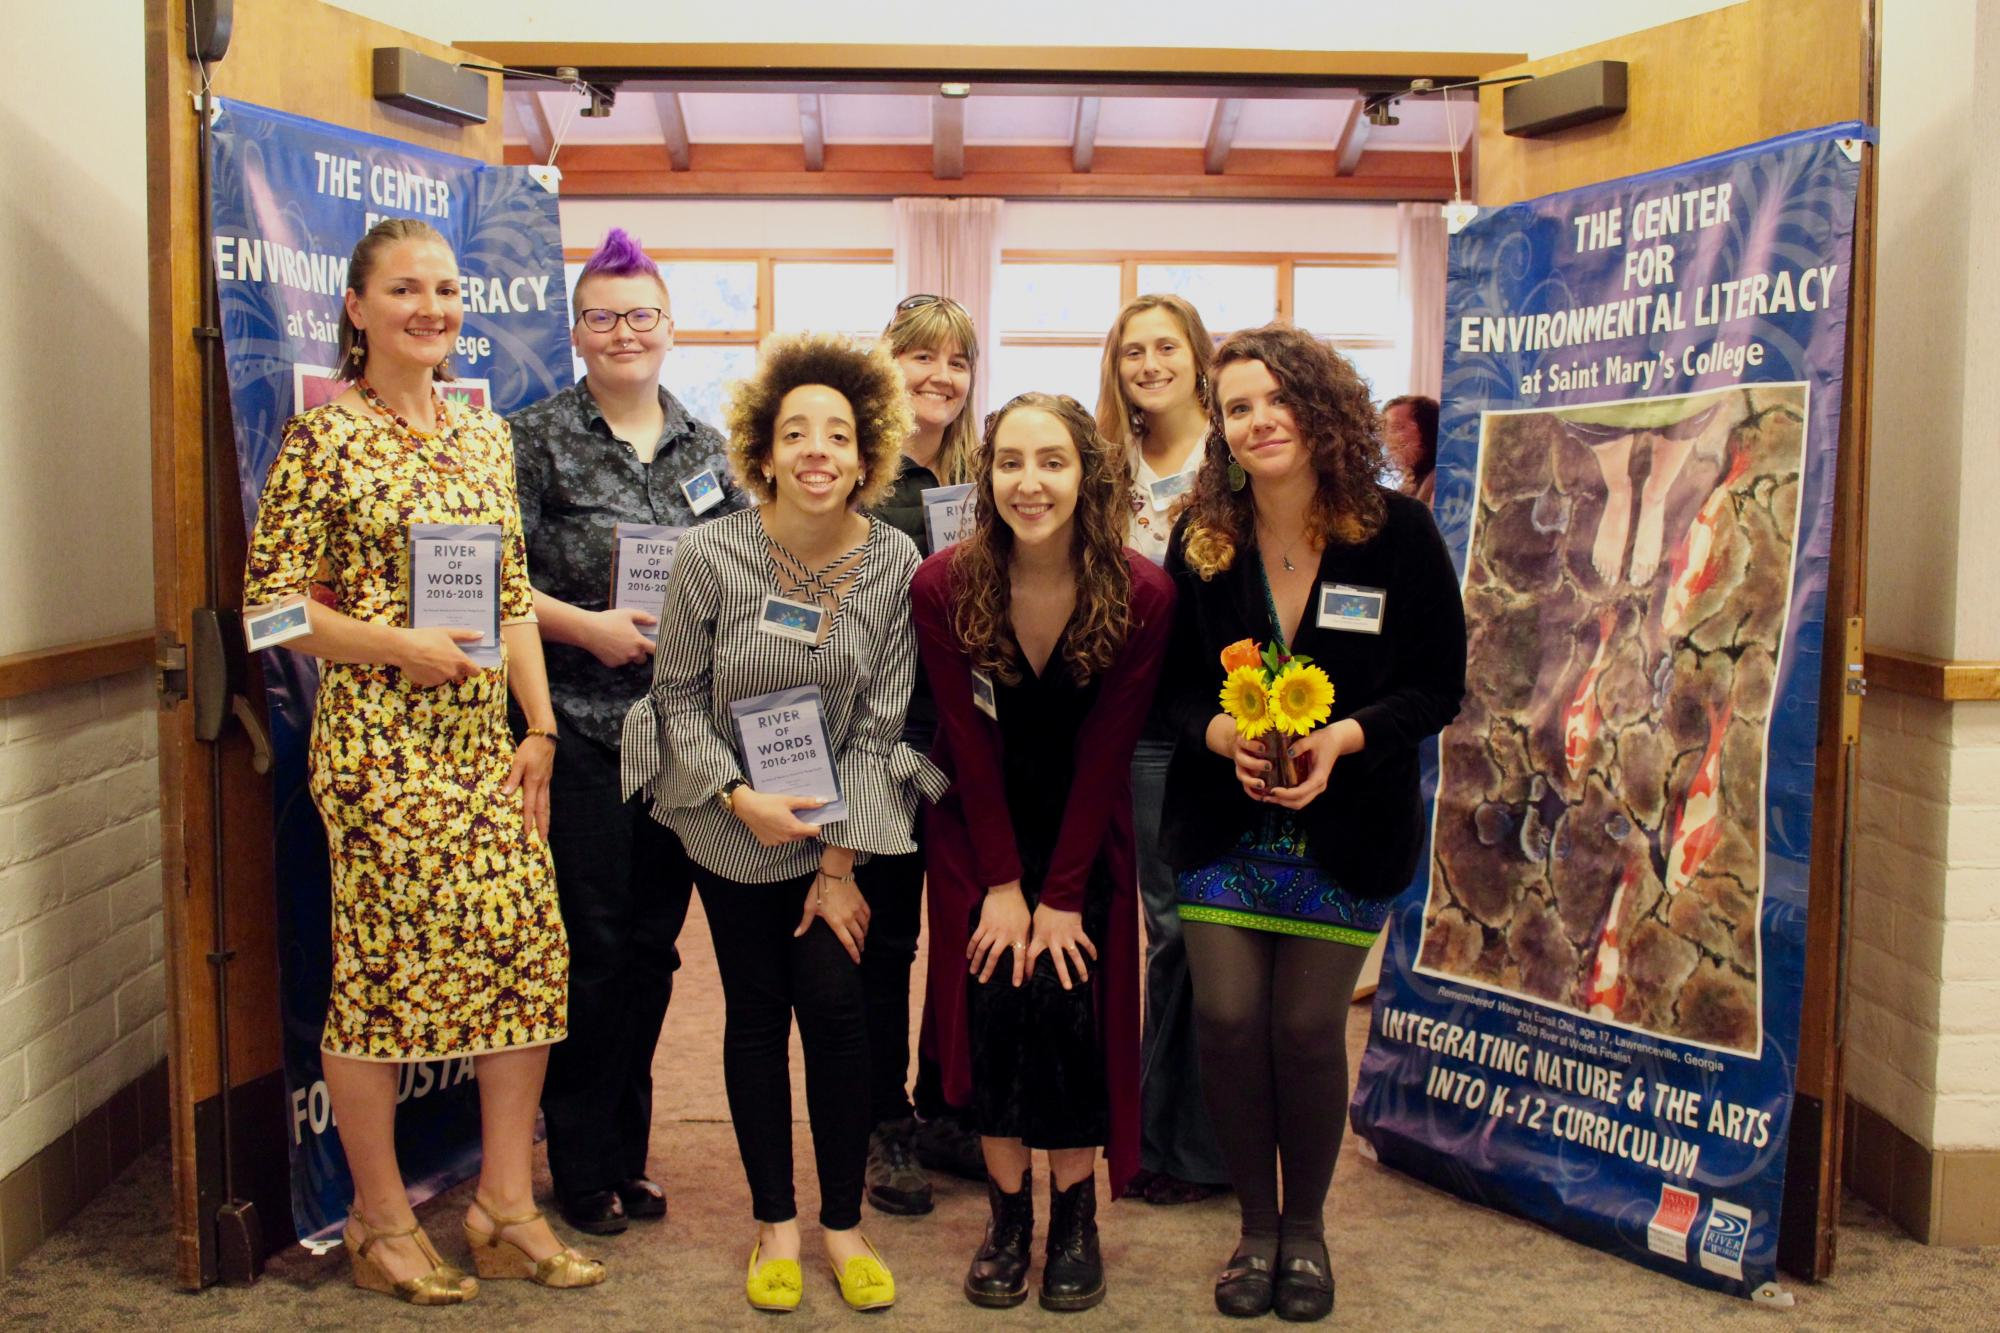 2018 River of Words winners and finalists at the 2018 River of Words Award Ceremony at Saint Mary's College of California's Claeys Lounge: April 29th, 2018. Photography by Adriana Avila